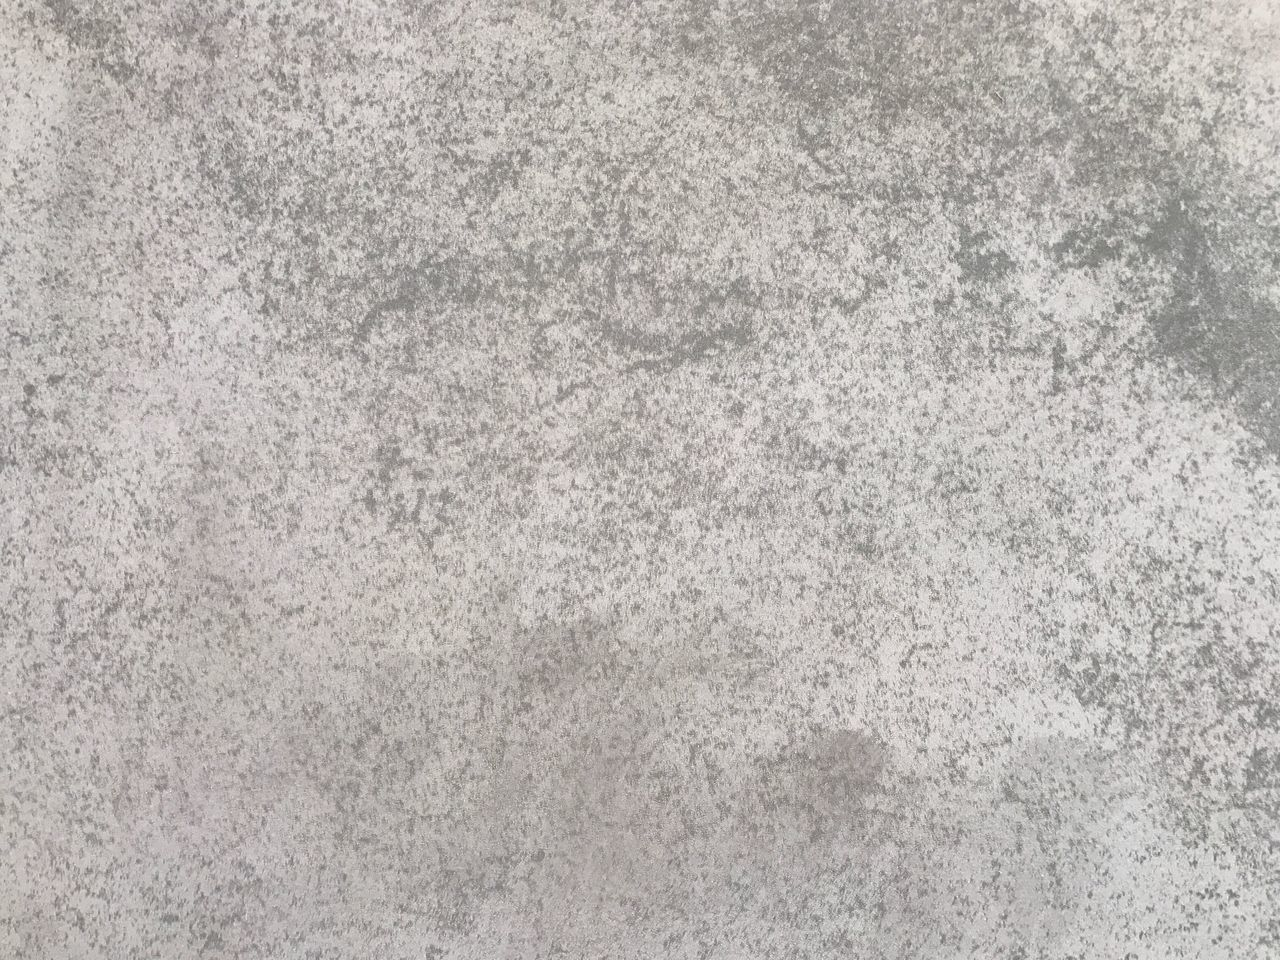 Backgrounds Textured  Pattern Gray Textured Effect Full Frame Abstract Stone Material Empty Macro Paper Copy Space Nature No People Blank Close-up Old-fashioned Watercolor Painting Fiber Painted Image